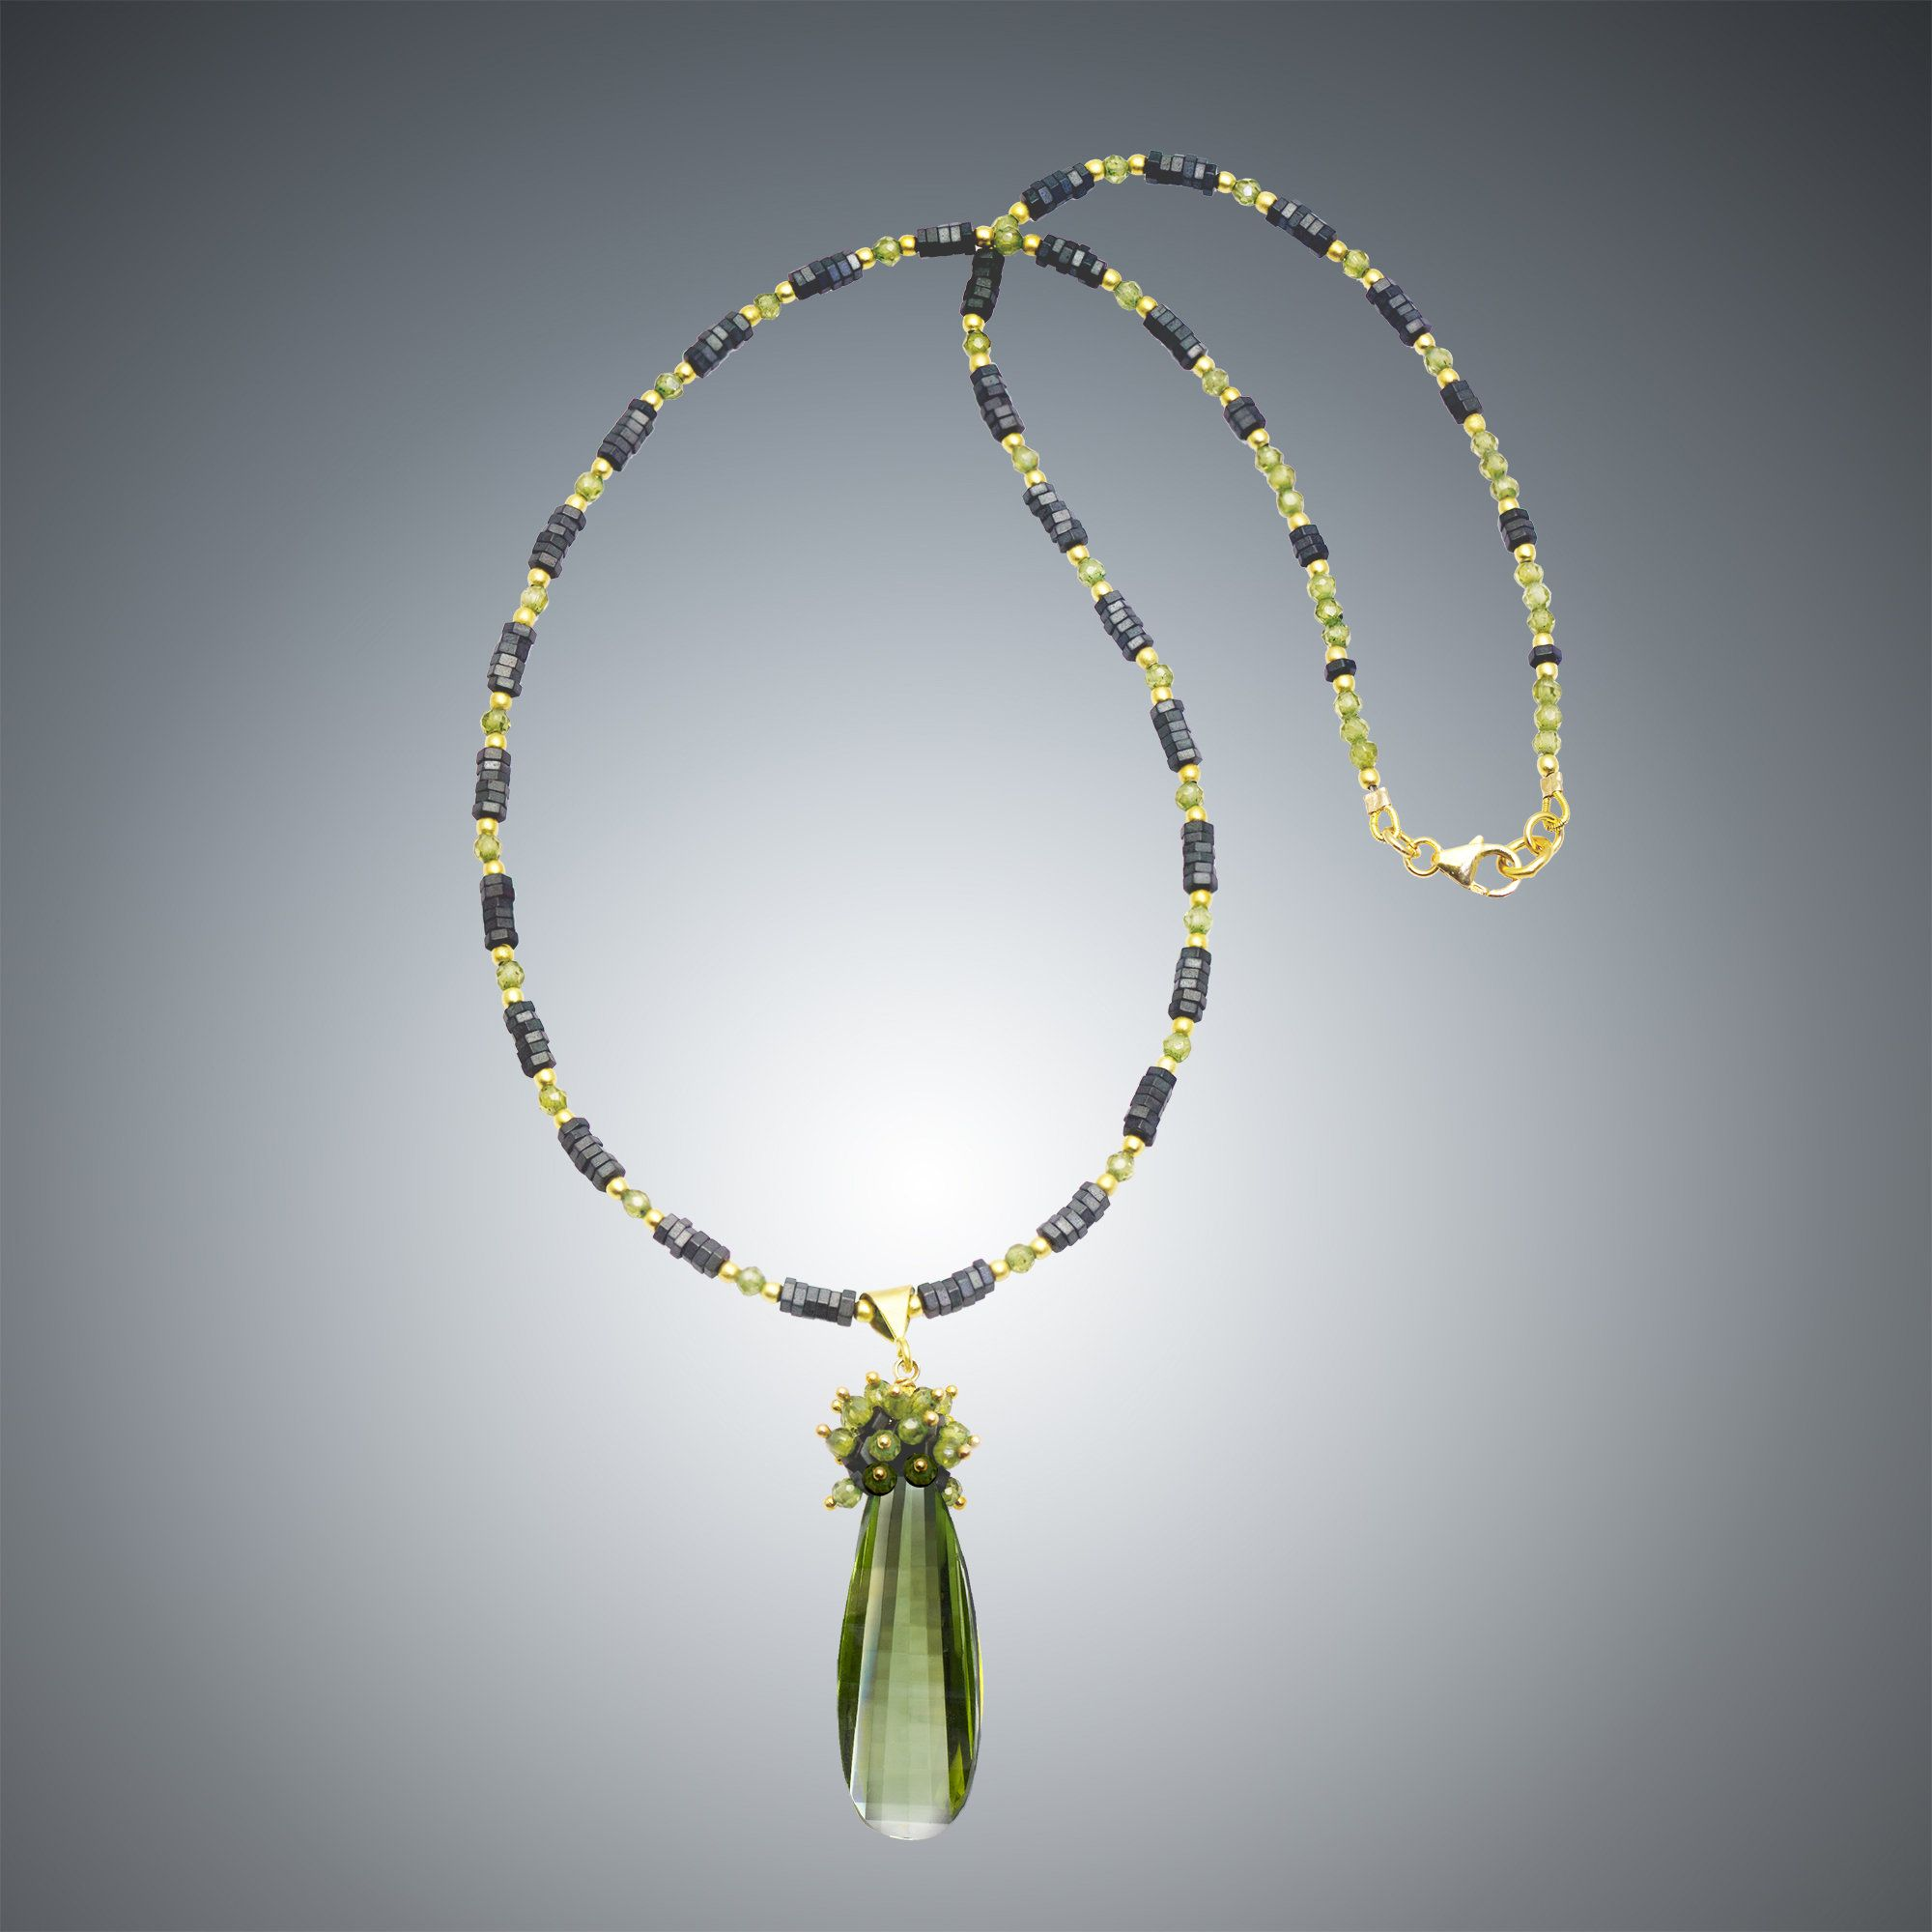 Green Quartz and Hematite Necklace by Judy Bliss. This necklace is combines faceted green quartz, hematite, and includes a vermeil trigger clasp.